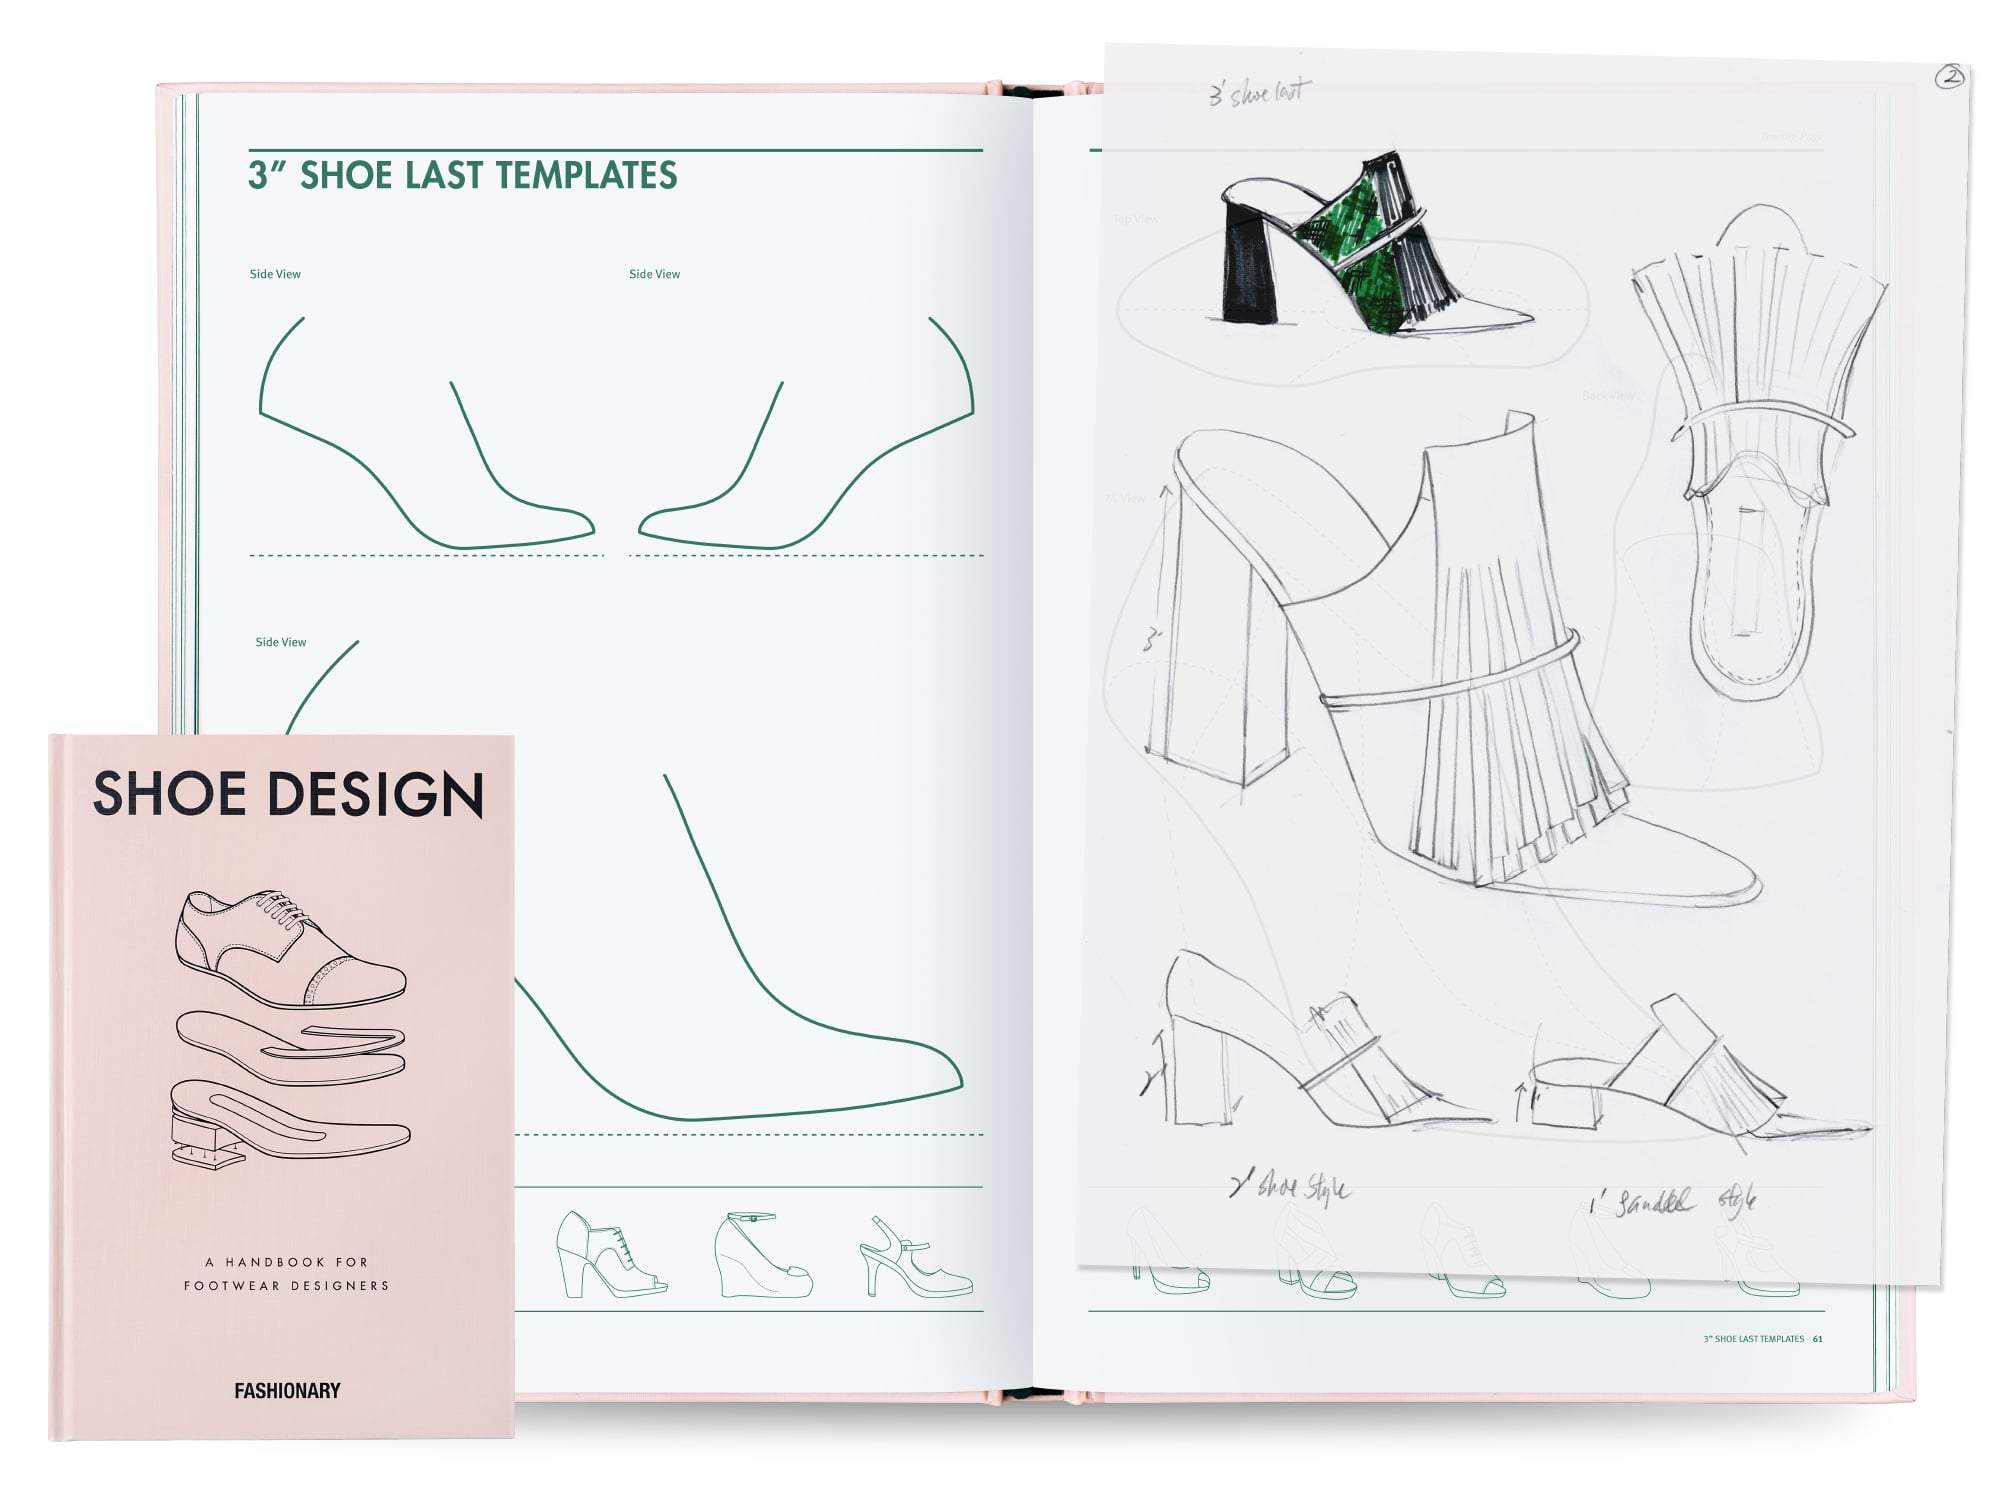 high heel shoe design template - shoe drawing template at free for